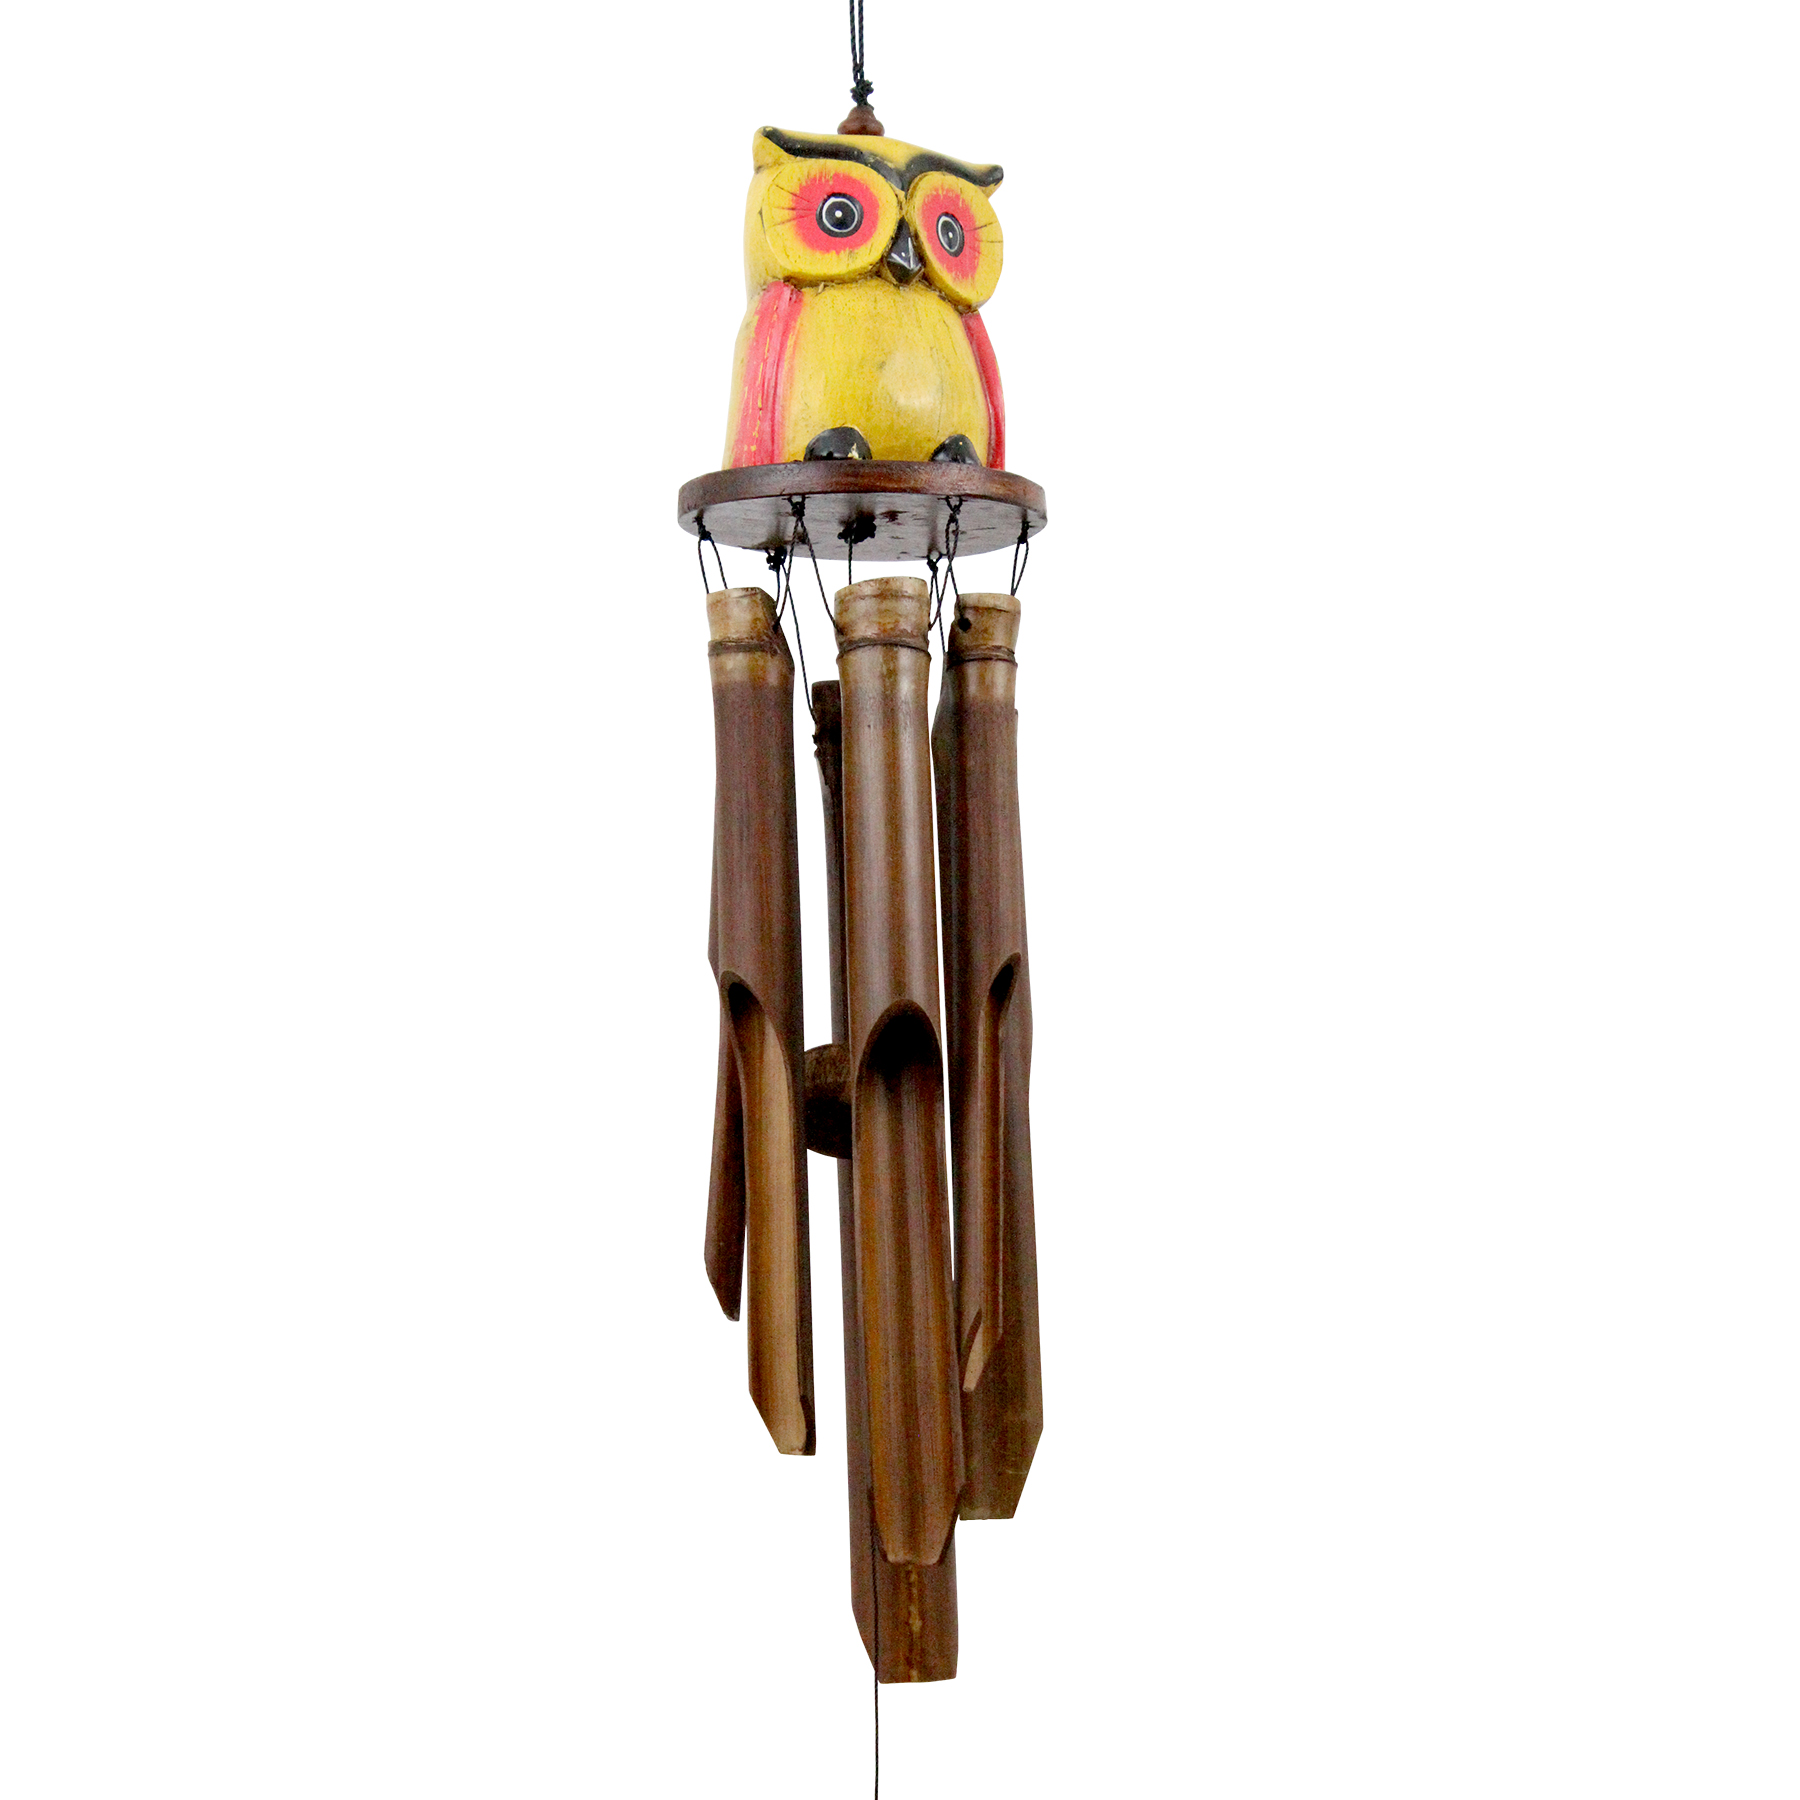 248 - Yellow Oscar Owl Bamboo Wind Chime